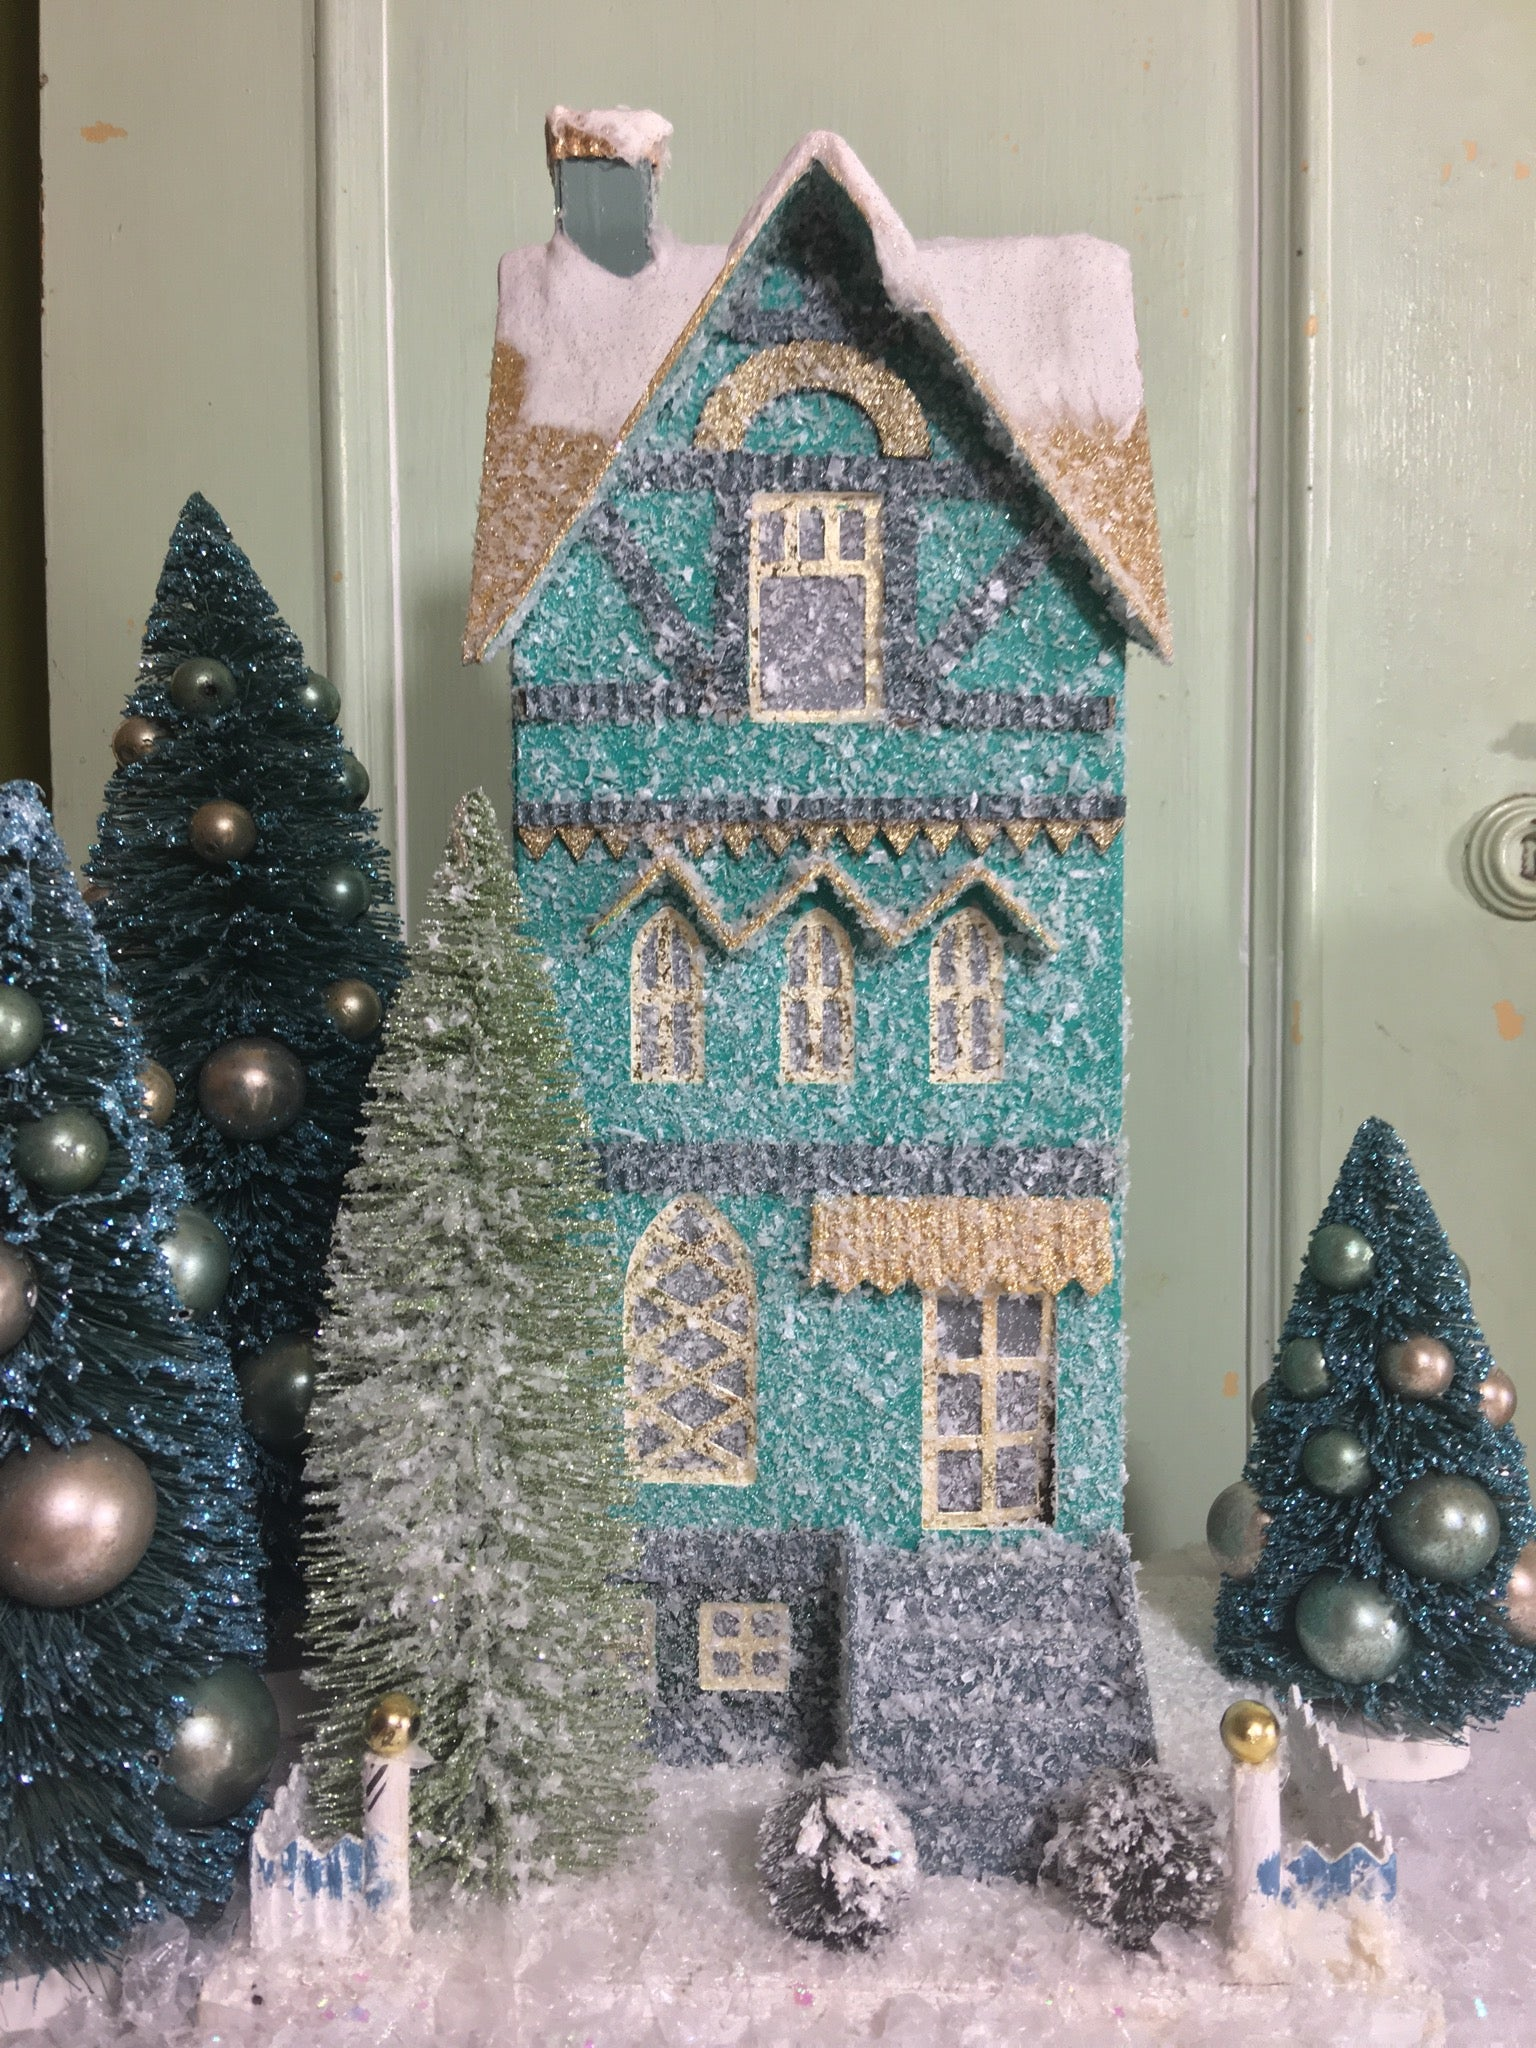 Teal Townhouse - Putz Christmas Houses